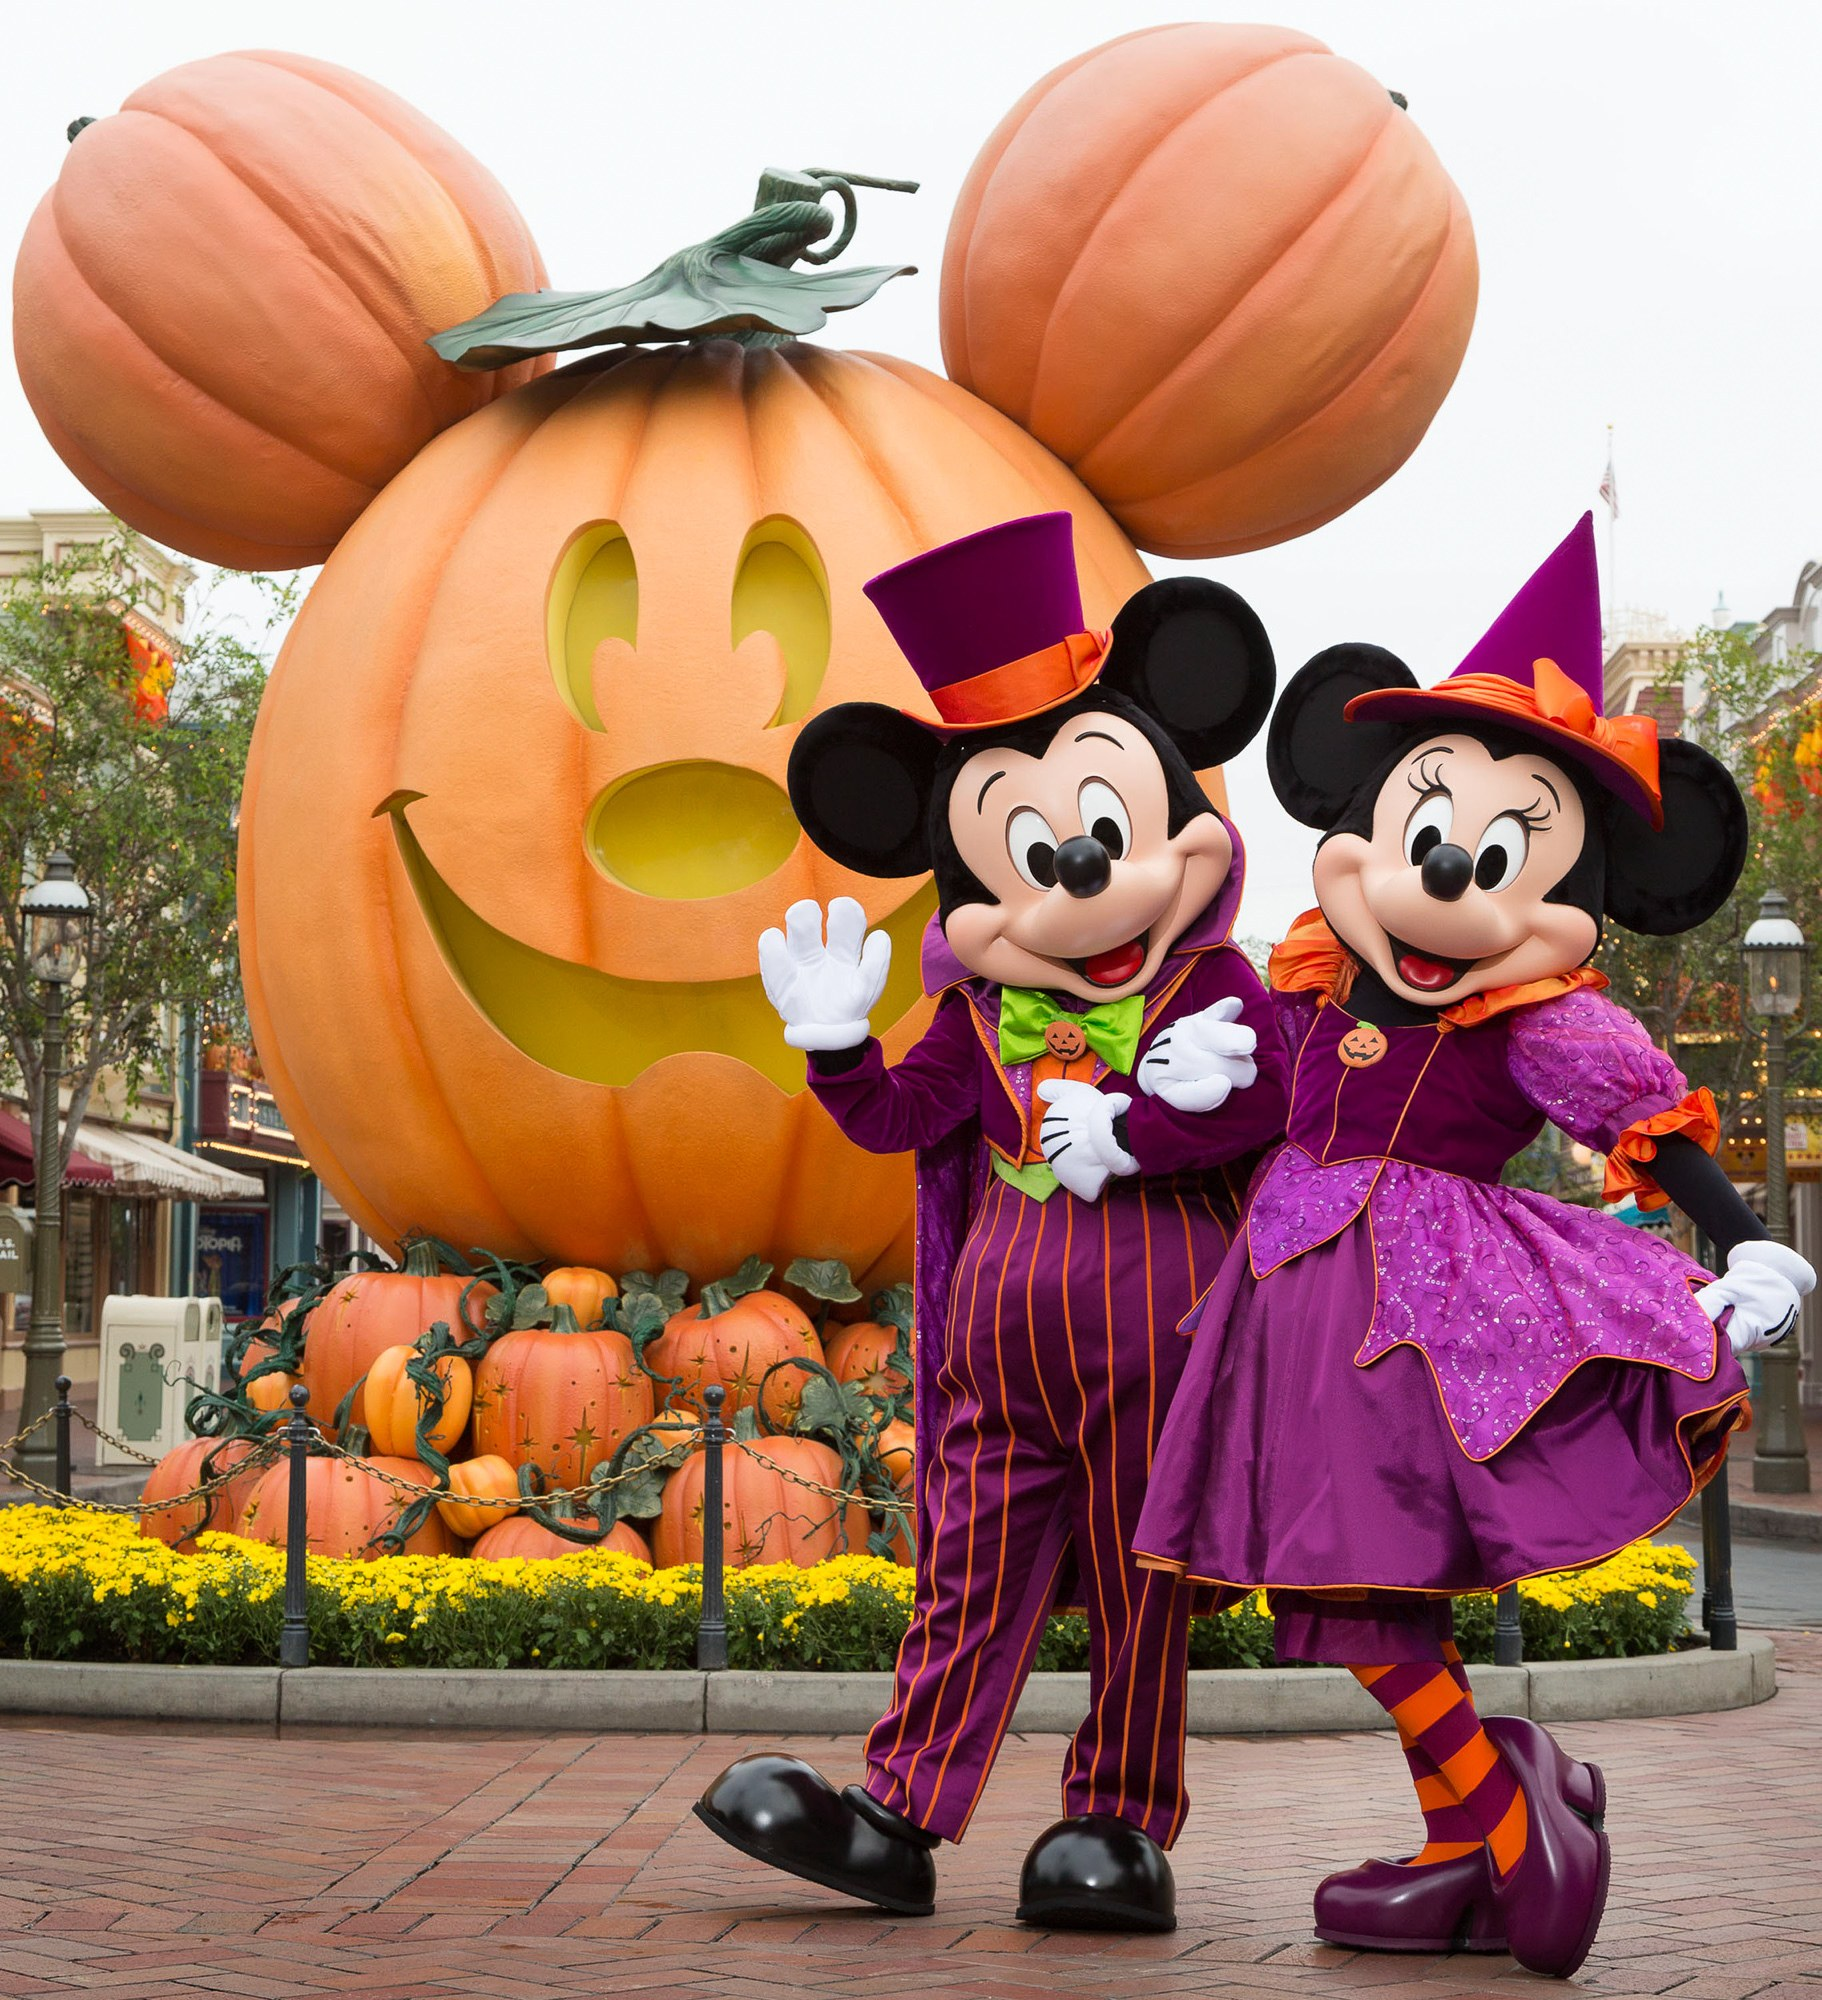 Even Mickey and Minnie dress up for Halloween at Disneyland